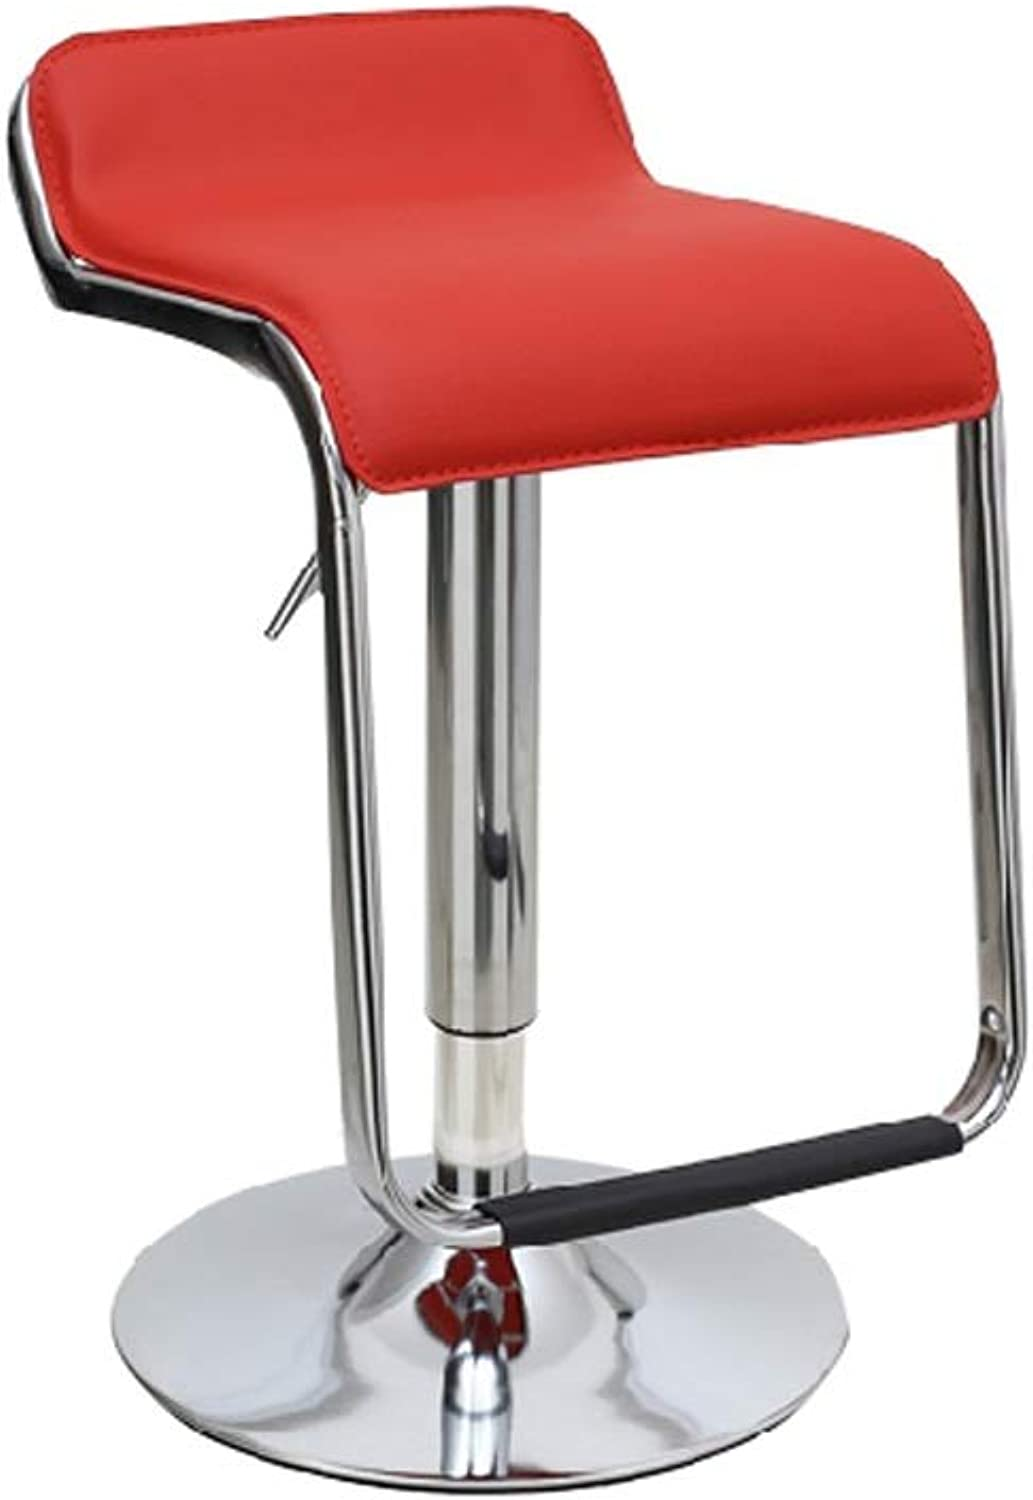 Barstool Bar Chair Simple Home Lift Swivel Chair 8 colors Adjustable Height 60cm to 80cm (color   Red)